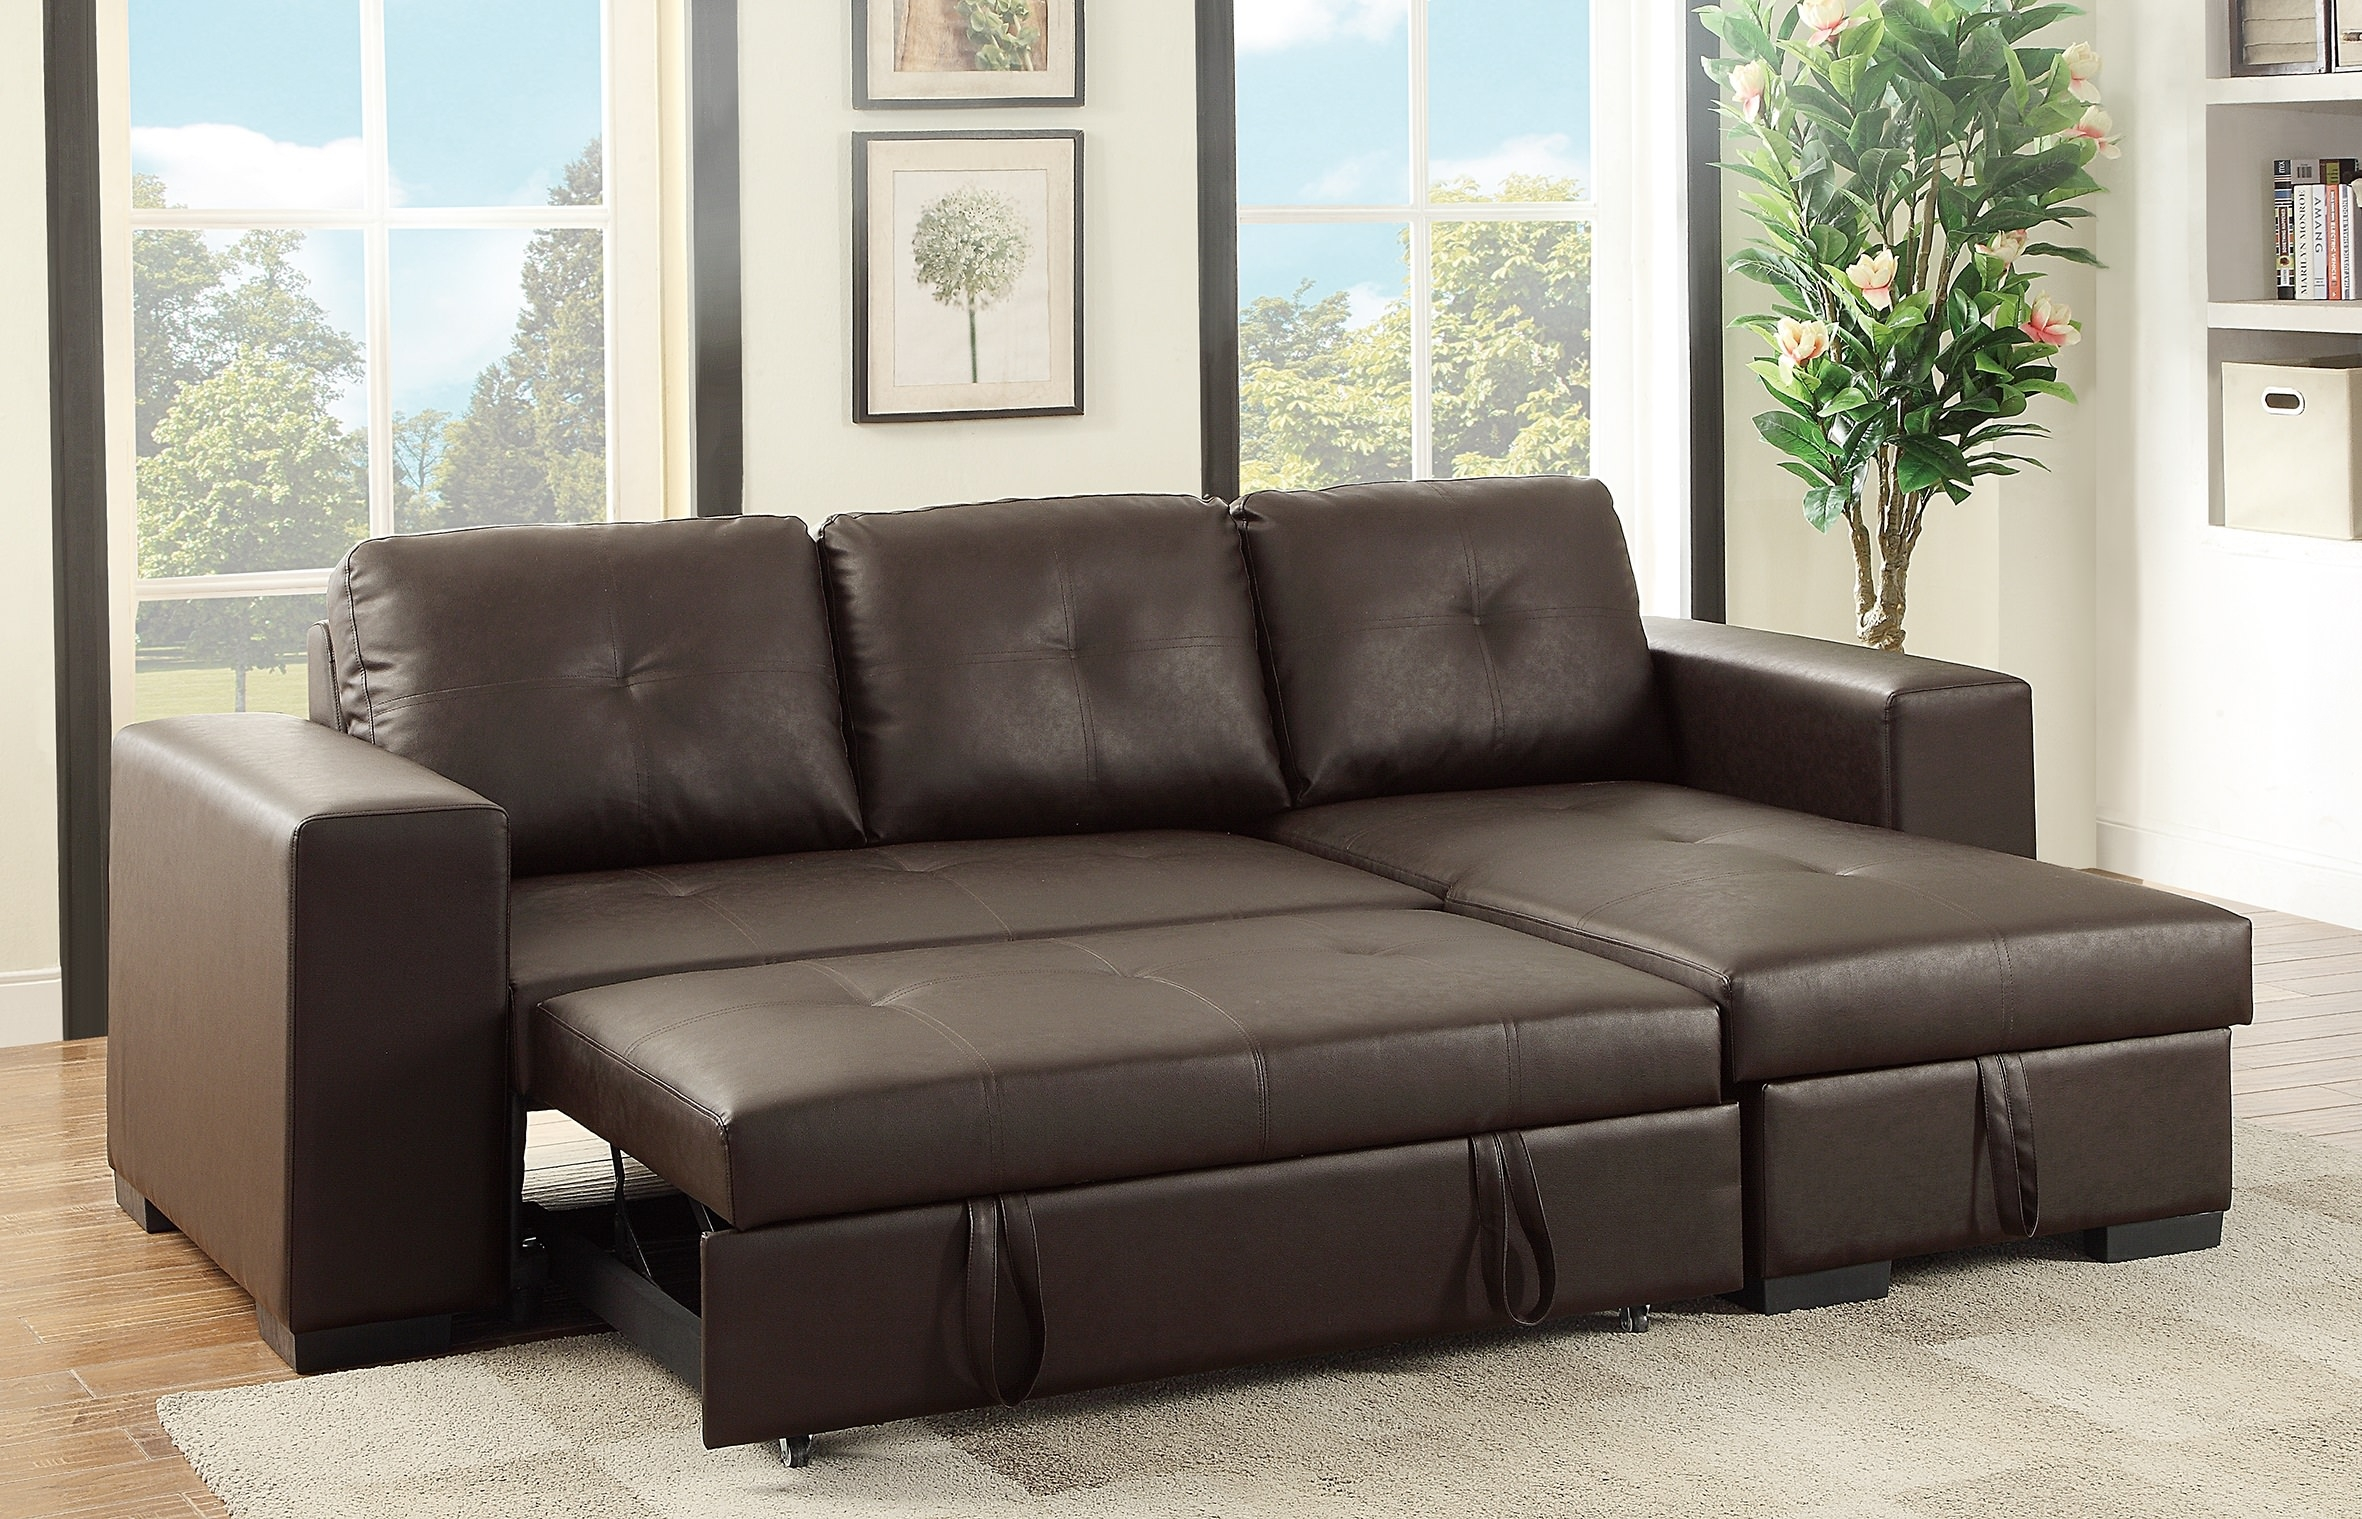 F6930 Espresso Convertible Sectional Sofa Poundex Within Convertible Sectional Sofas (#6 of 12)